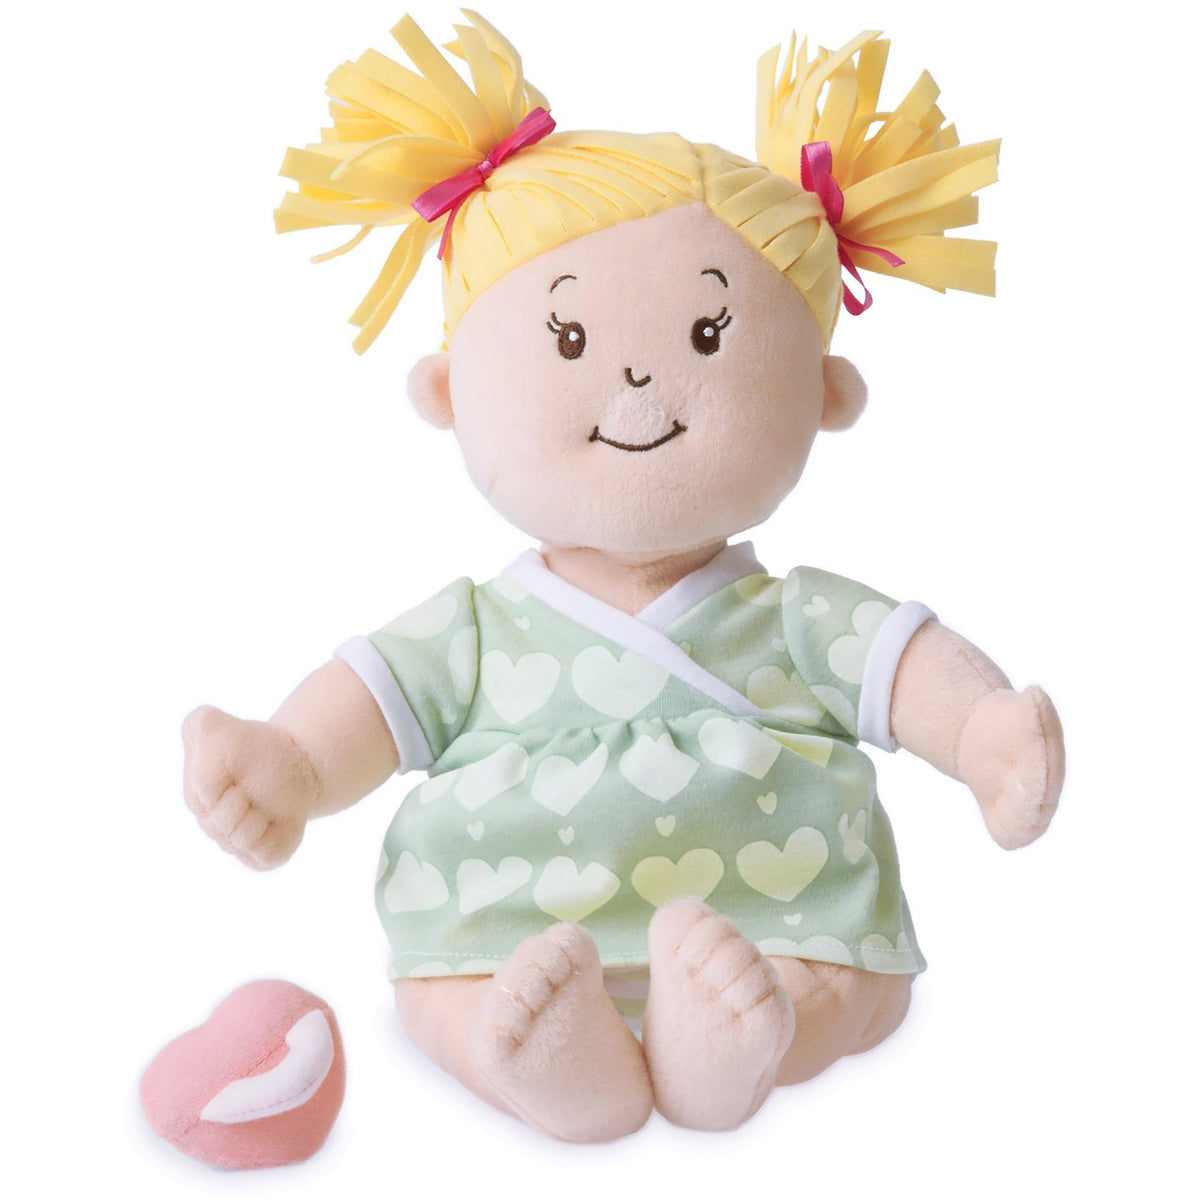 Baby Stella Blonde Doll